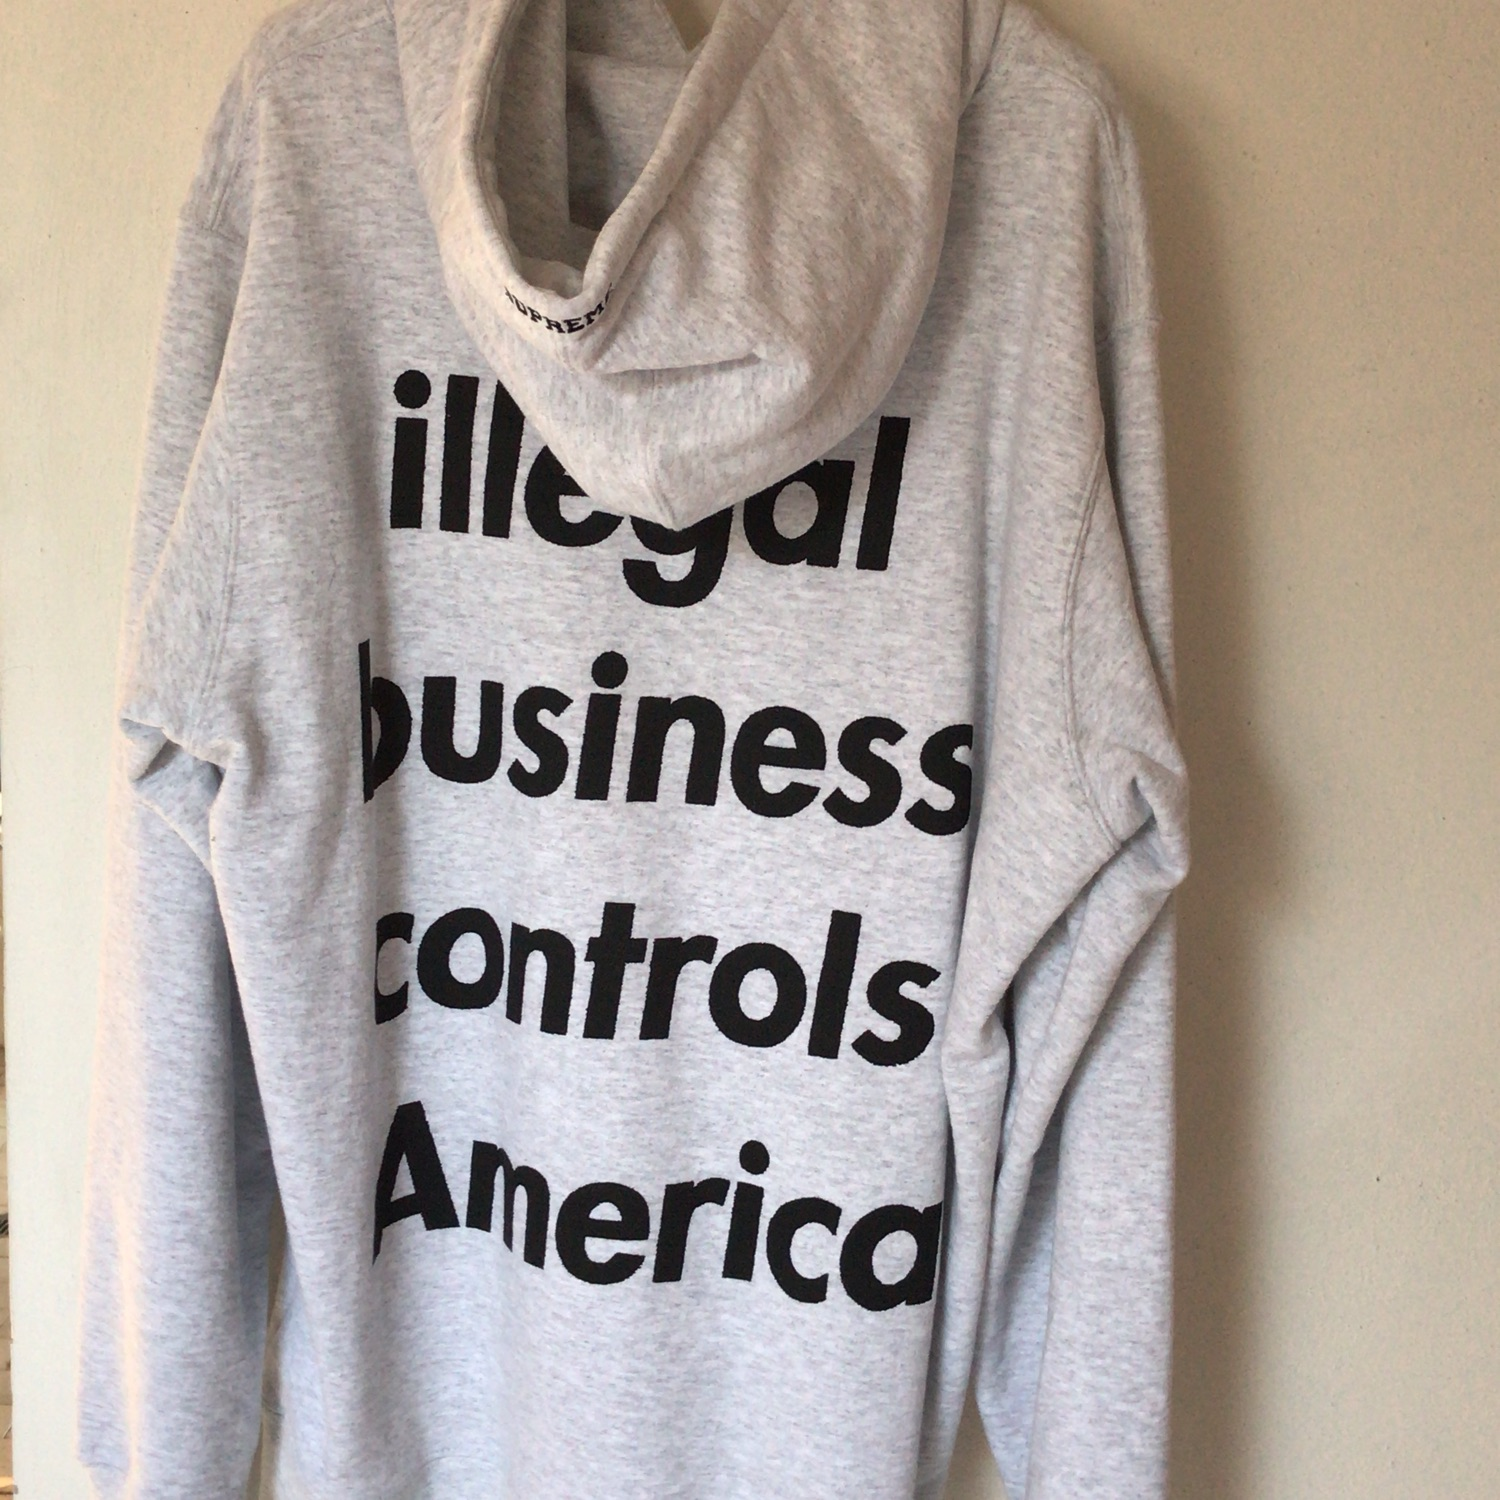 Supreme Illegal Business Controls America M